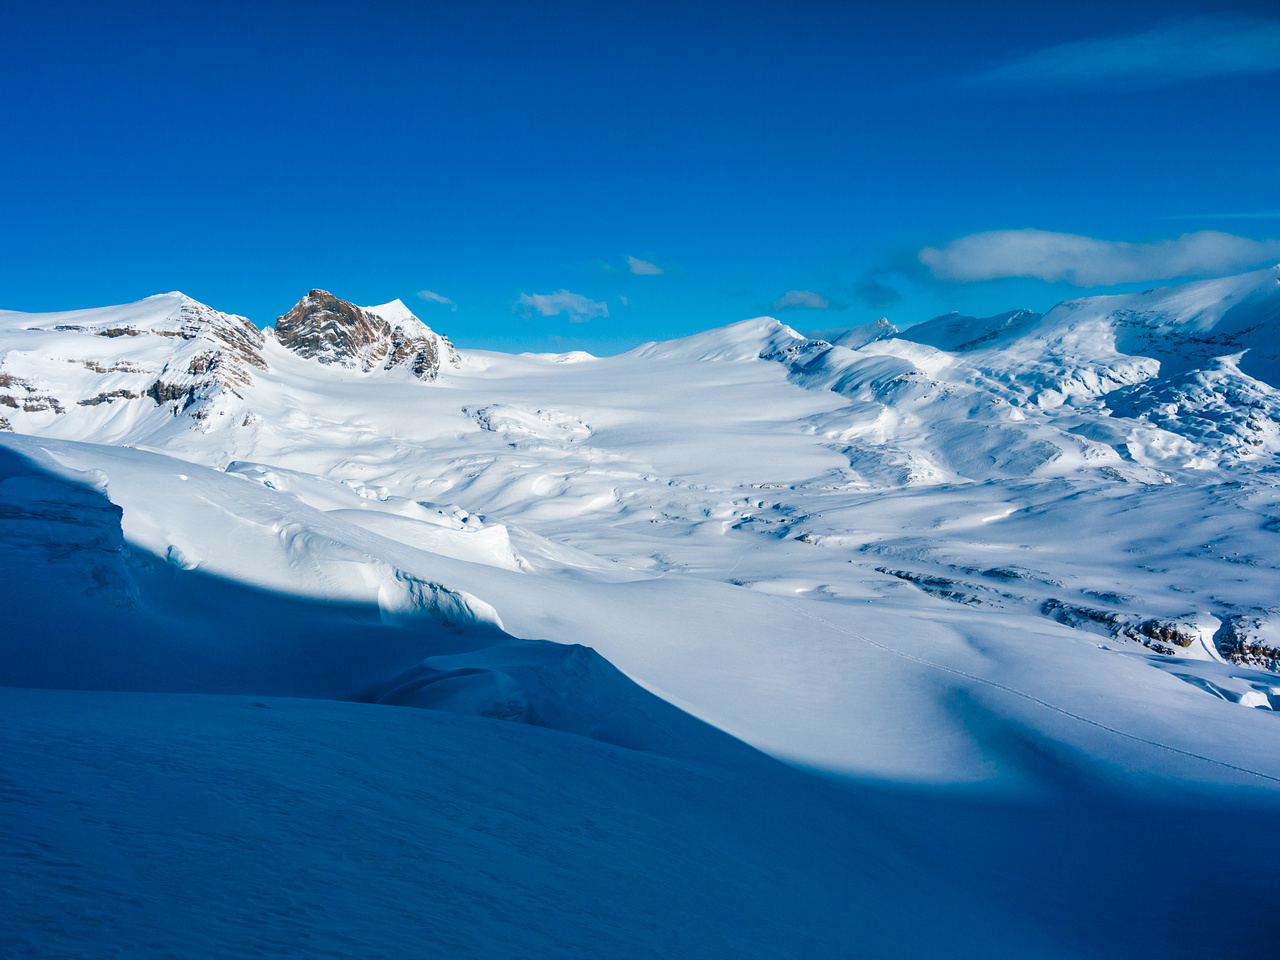 Beautiful view over the Vulture Glacier from high up near the Balfour Col. In good weather, this is a special place.